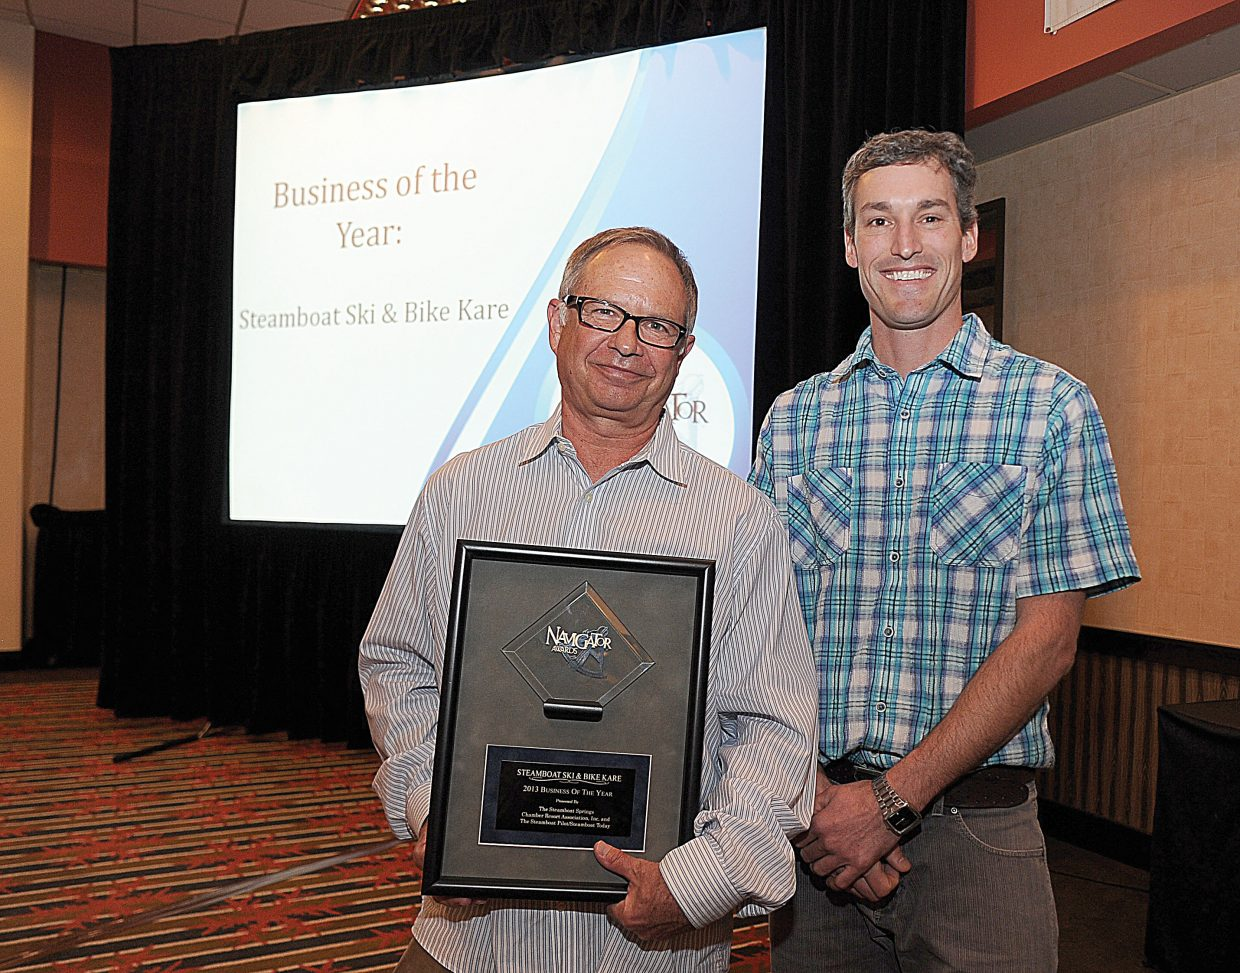 Steamboat Ski & Bike Kare manager Derek Hodson, and co-owner Mike Parra accept the Navigator award for Business of the Year on Tuesday at the Sheraton Steamboat Resort.